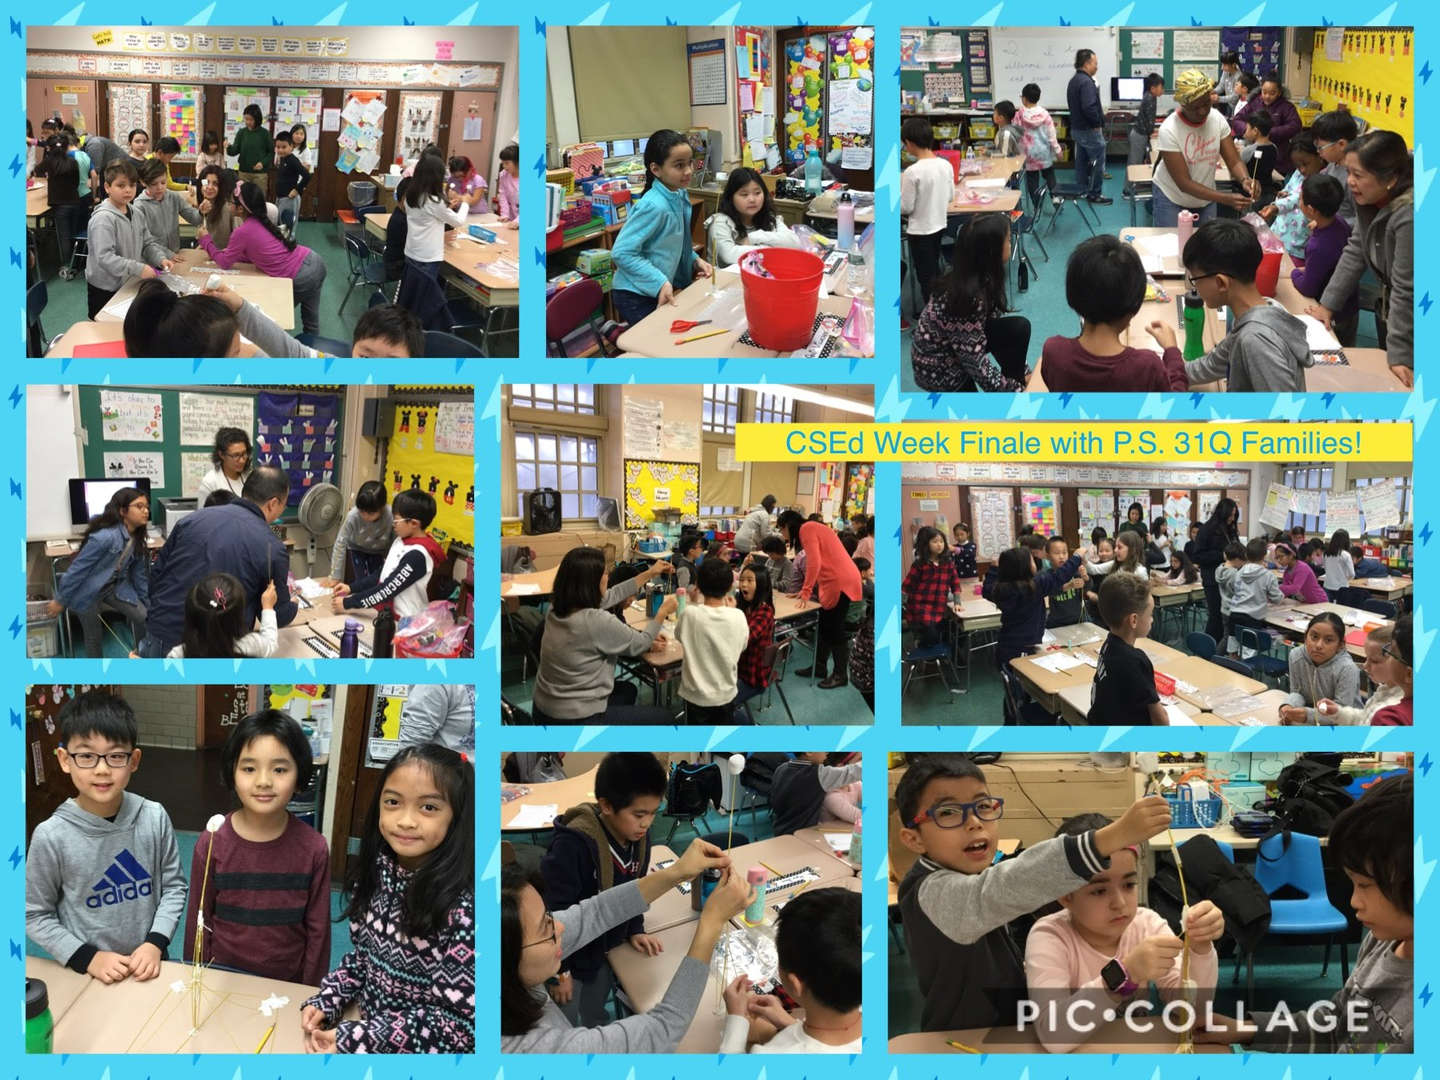 CSED Week Finale, Family Activity Collage 4